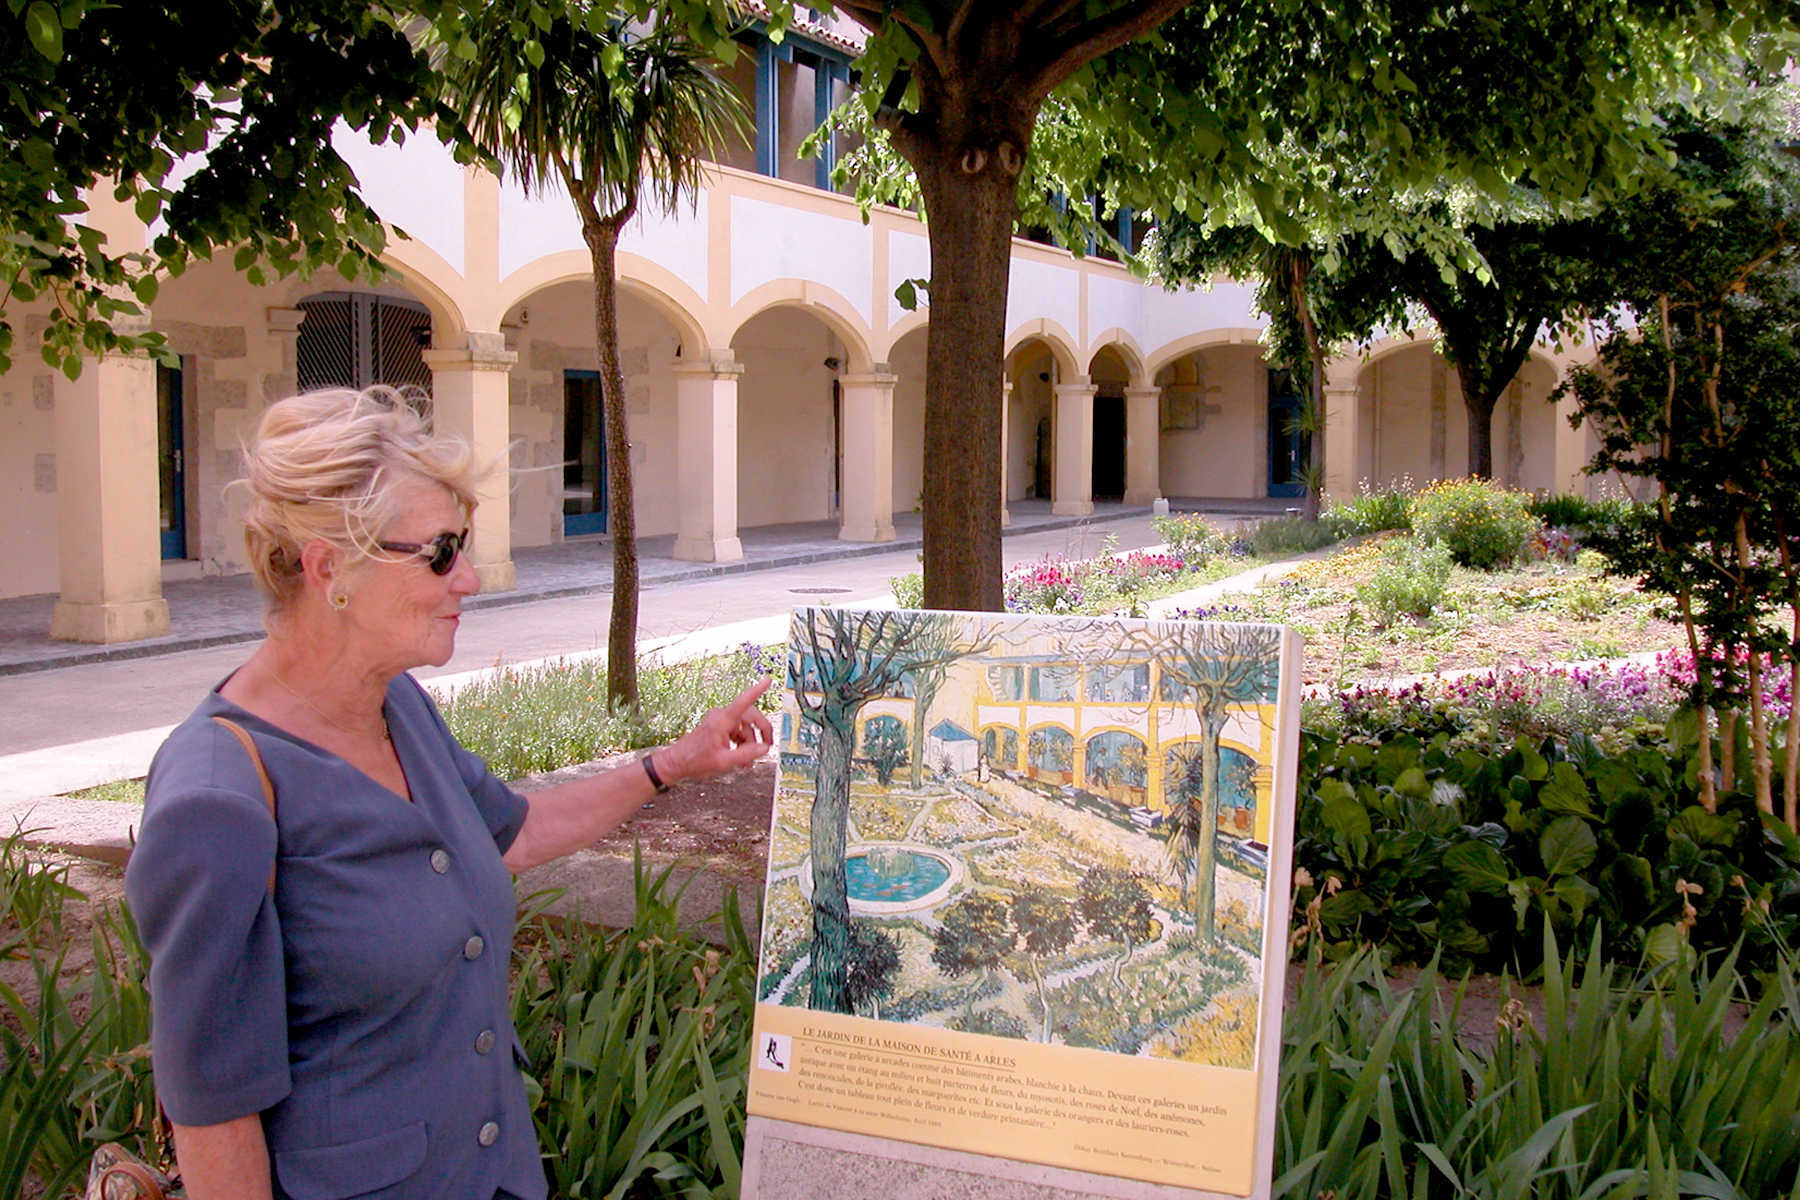 Guide at Van Gogh Garden, Arles, Provence, France